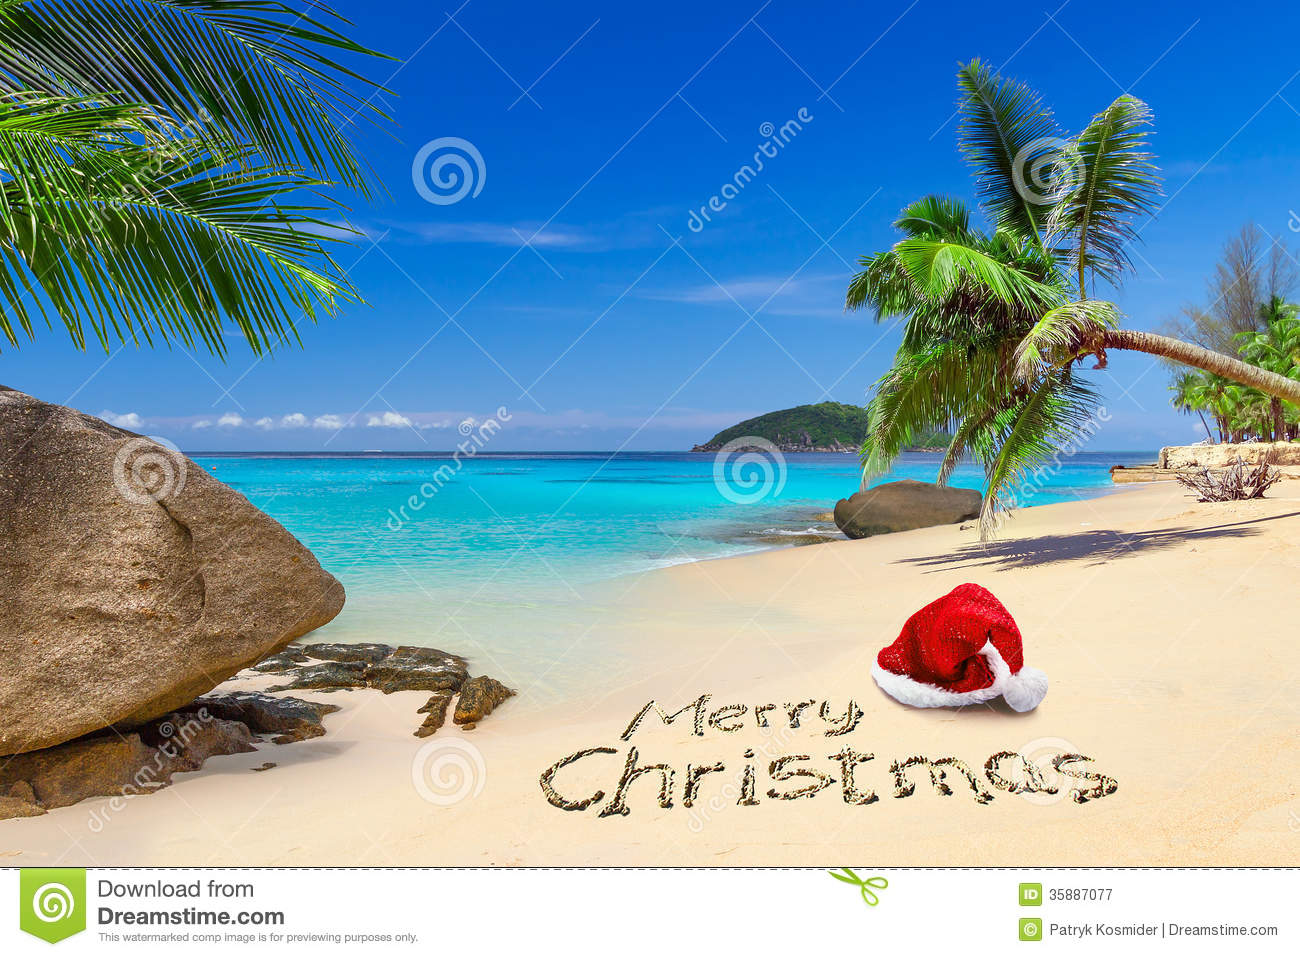 Santa Claus Tropical Beach Christmas Royalty Free Stock